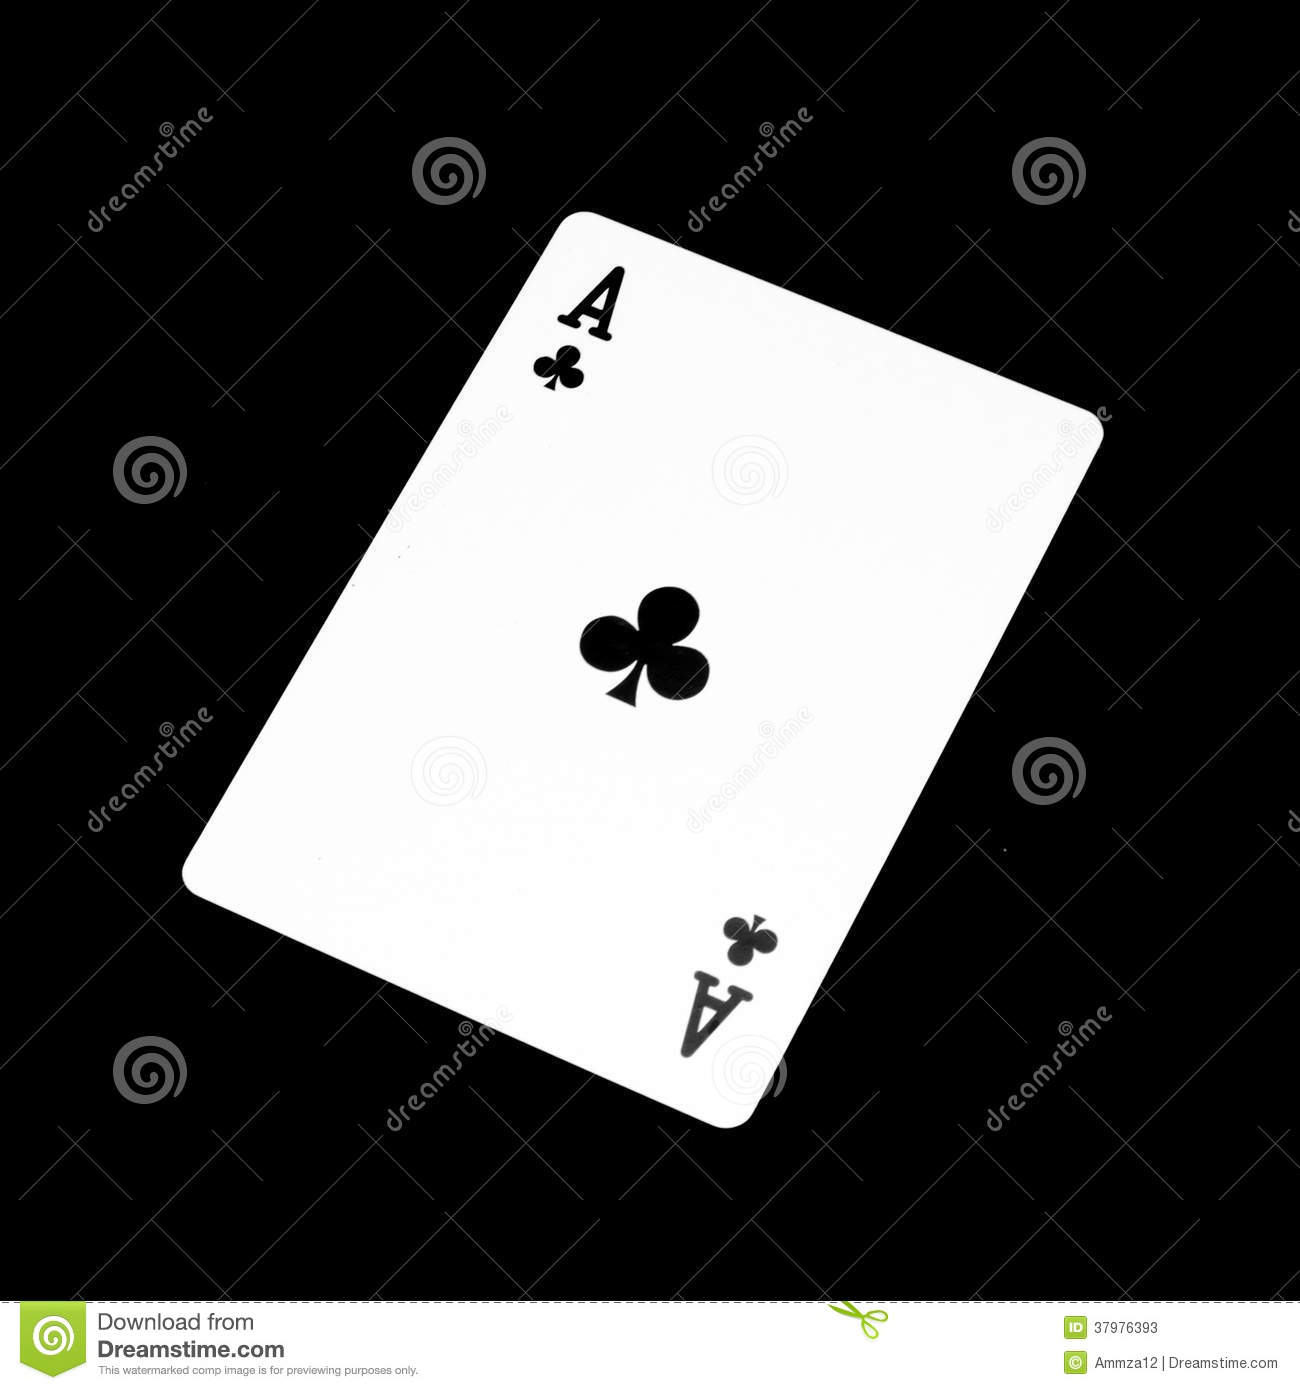 Ace clover card isolated on black background 1300x1390